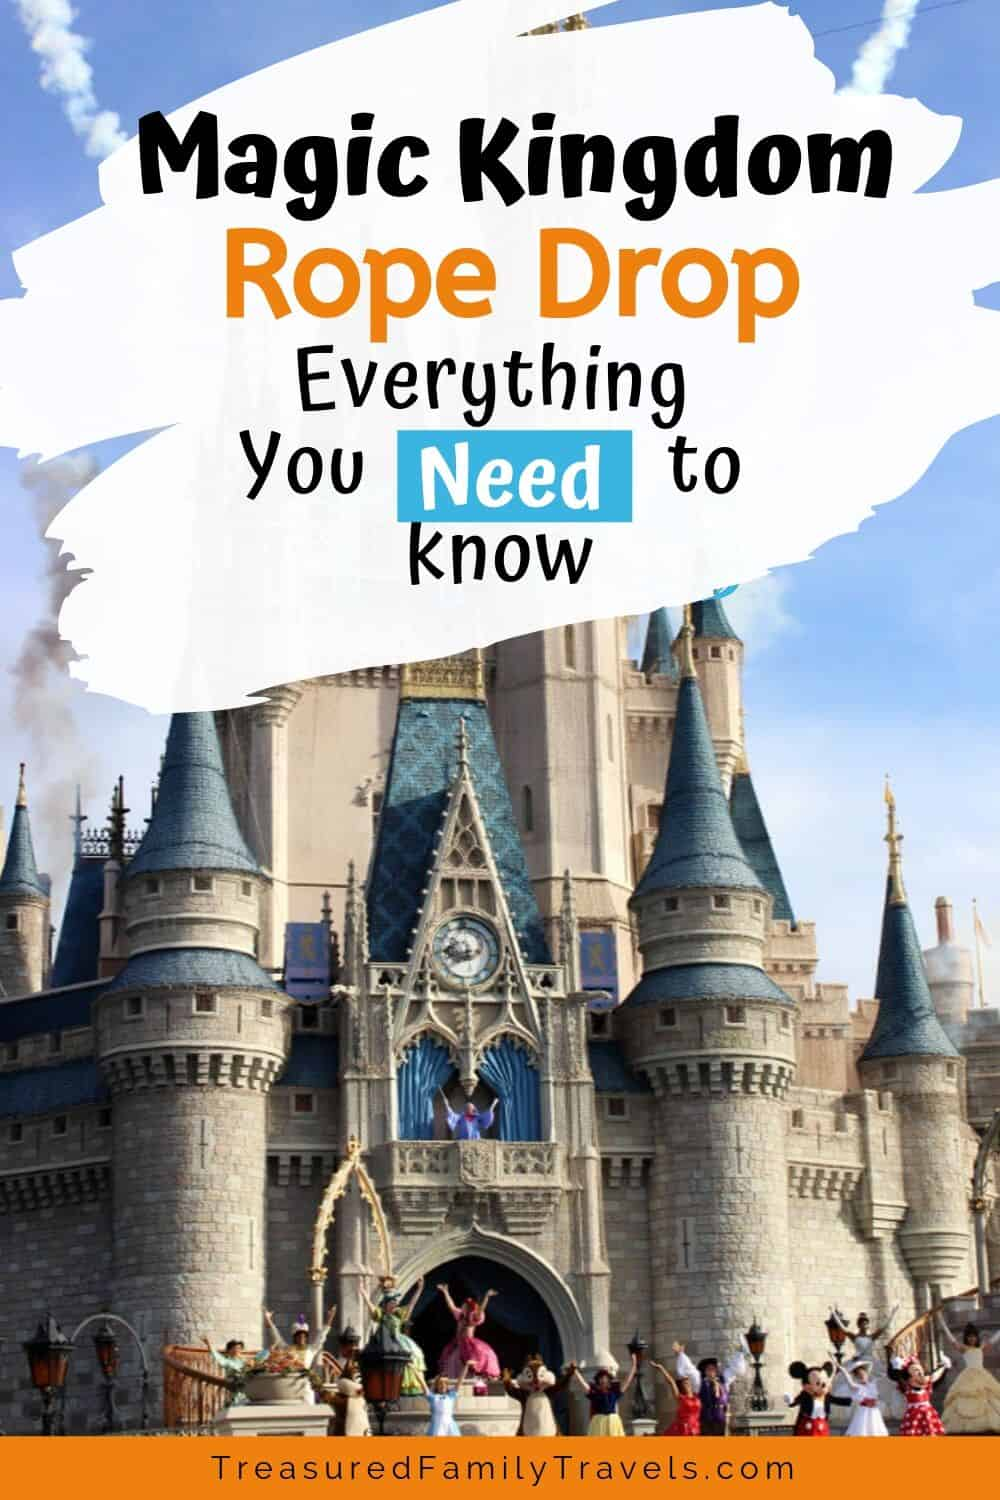 Magic Kingdom Rope Drop 10 Things You Must Know Magic Kingdom Disney World Tips And Tricks Adventures By Disney